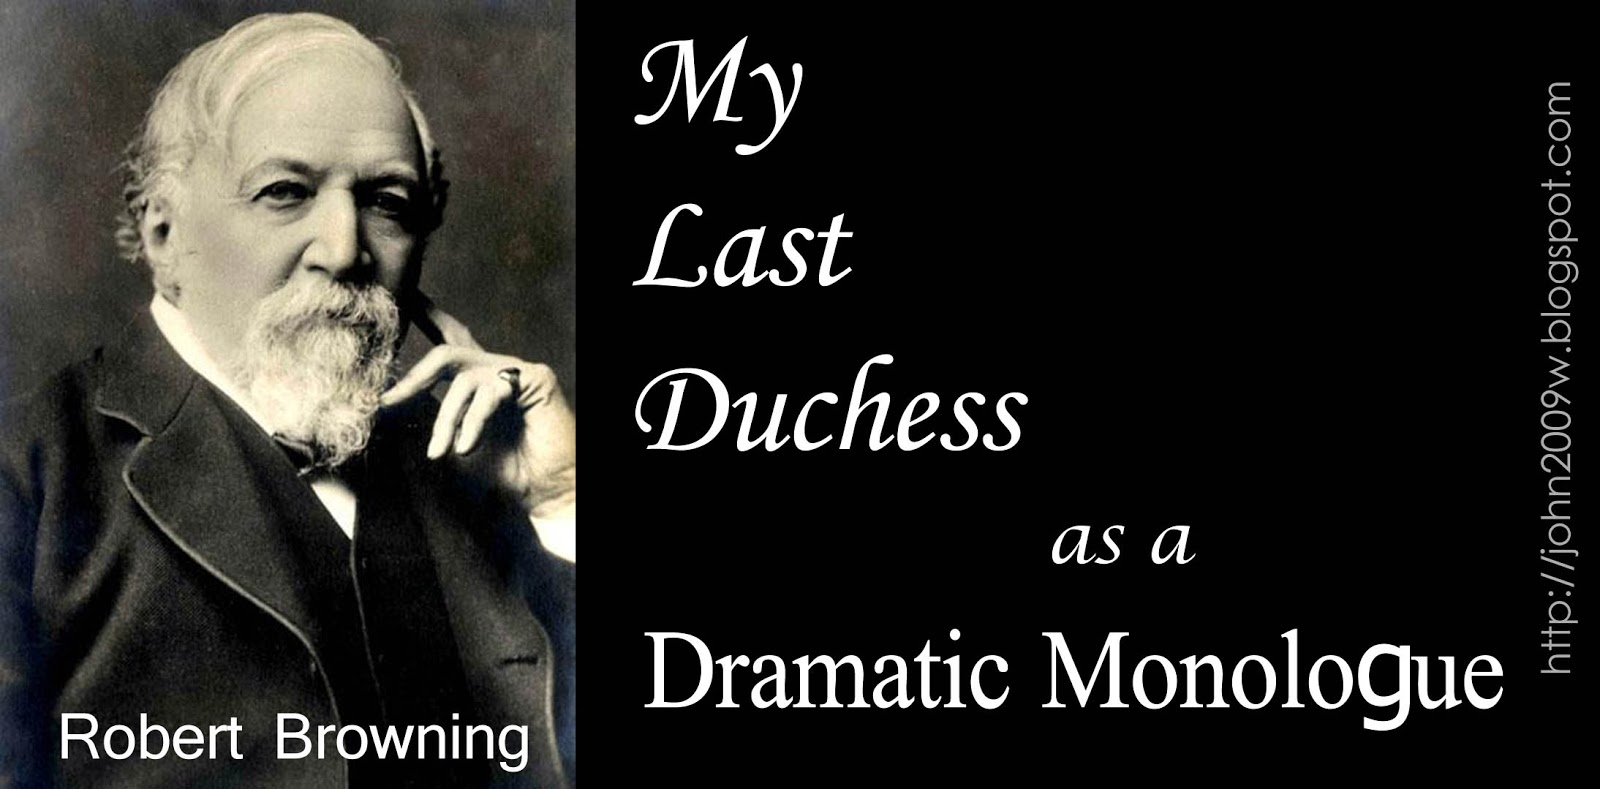 a look at robert brownings dramatic monologues during the victorian periods Dramatic monologue: dramatic monologue,, a poem written in the form of a speech of an individual character it compresses into a single vivid scene a narrative sense of the though the form is chiefly associated with robert browning, who raised it to a search britannica what are you looking for.